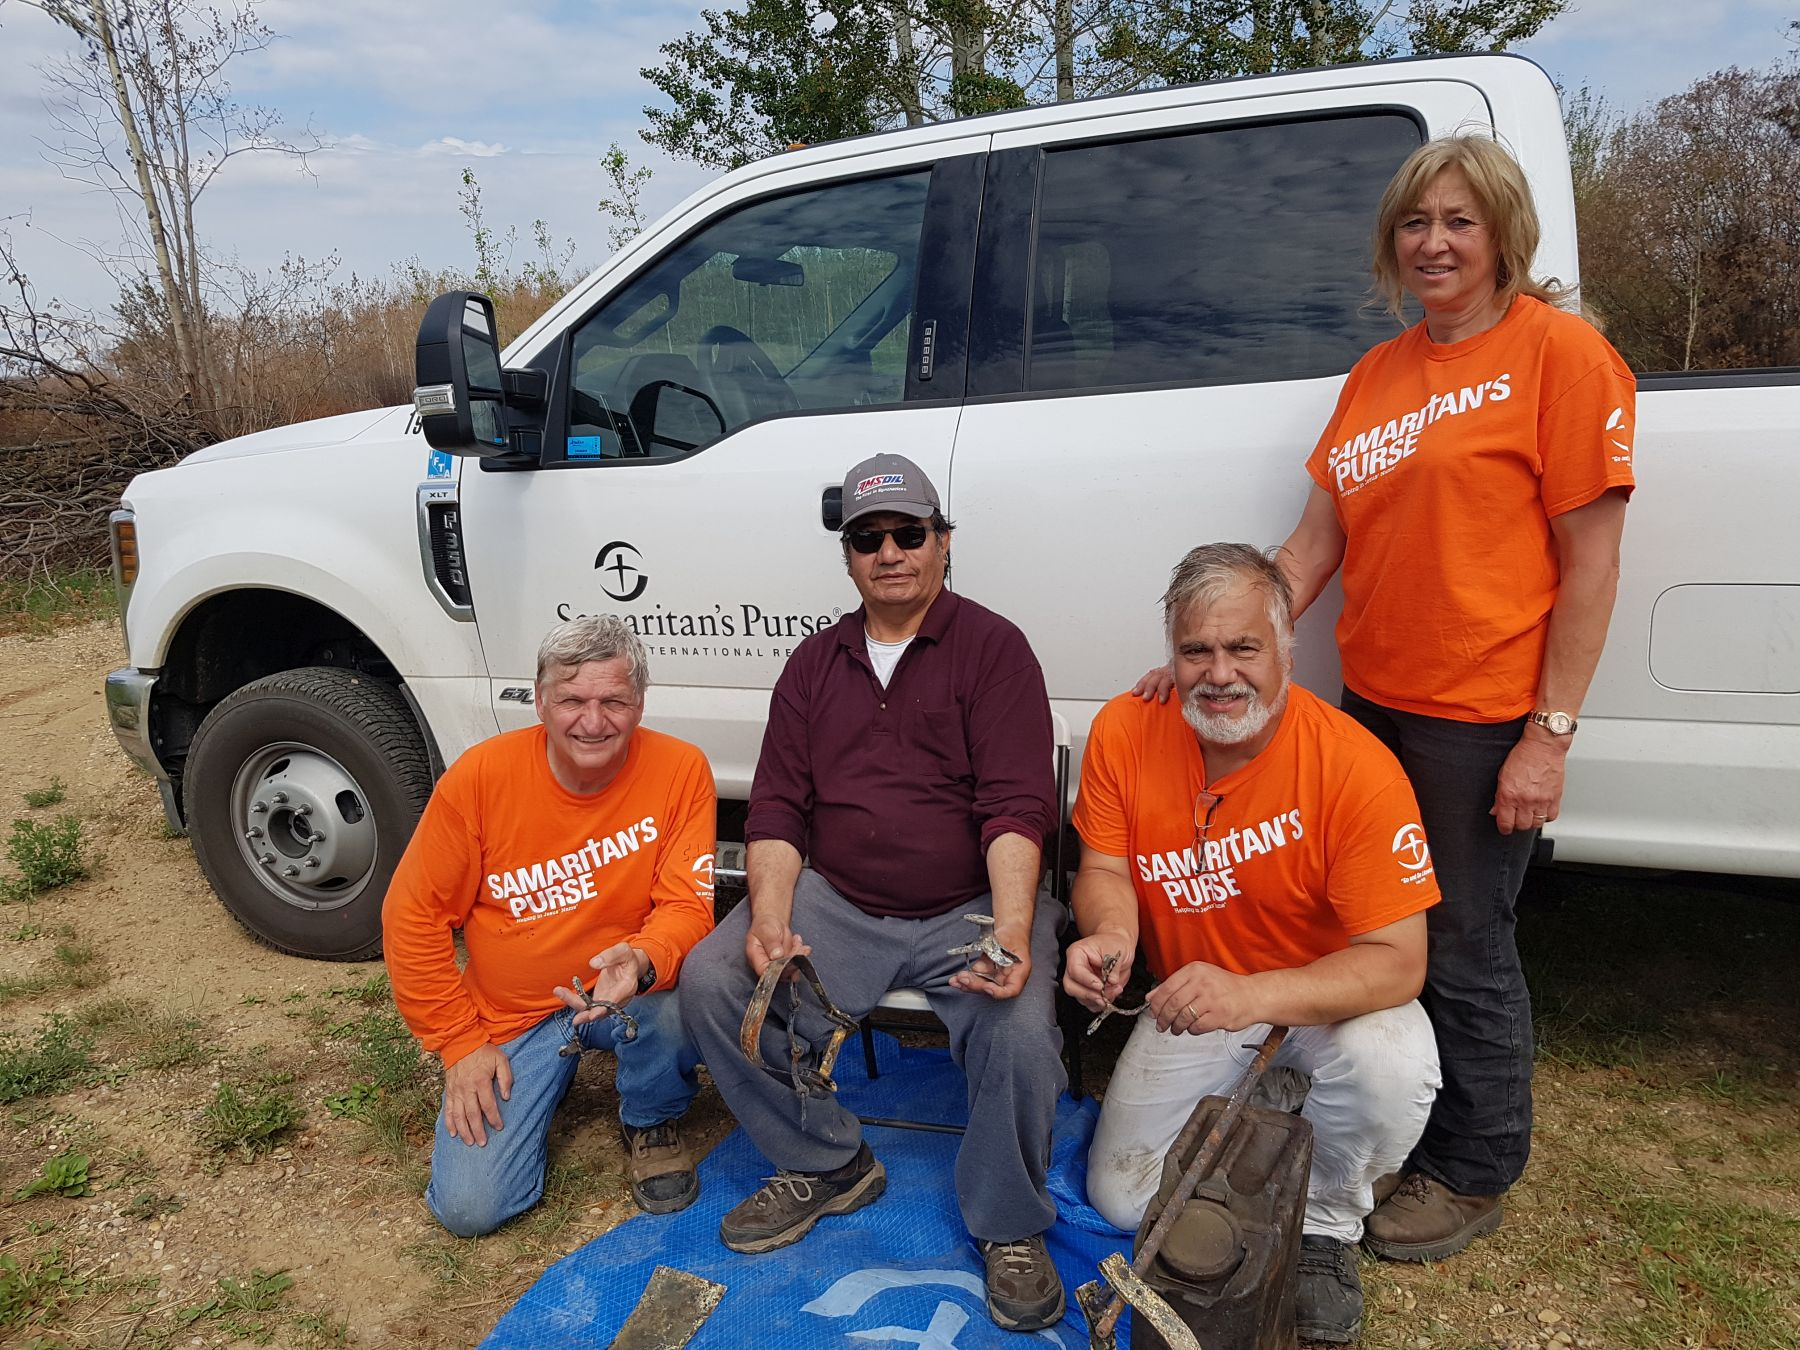 Samaritan's Purse's trained sifting crews helped wildfire victims recover precious belongings from the ashes, and also cleaned up and removed debris.